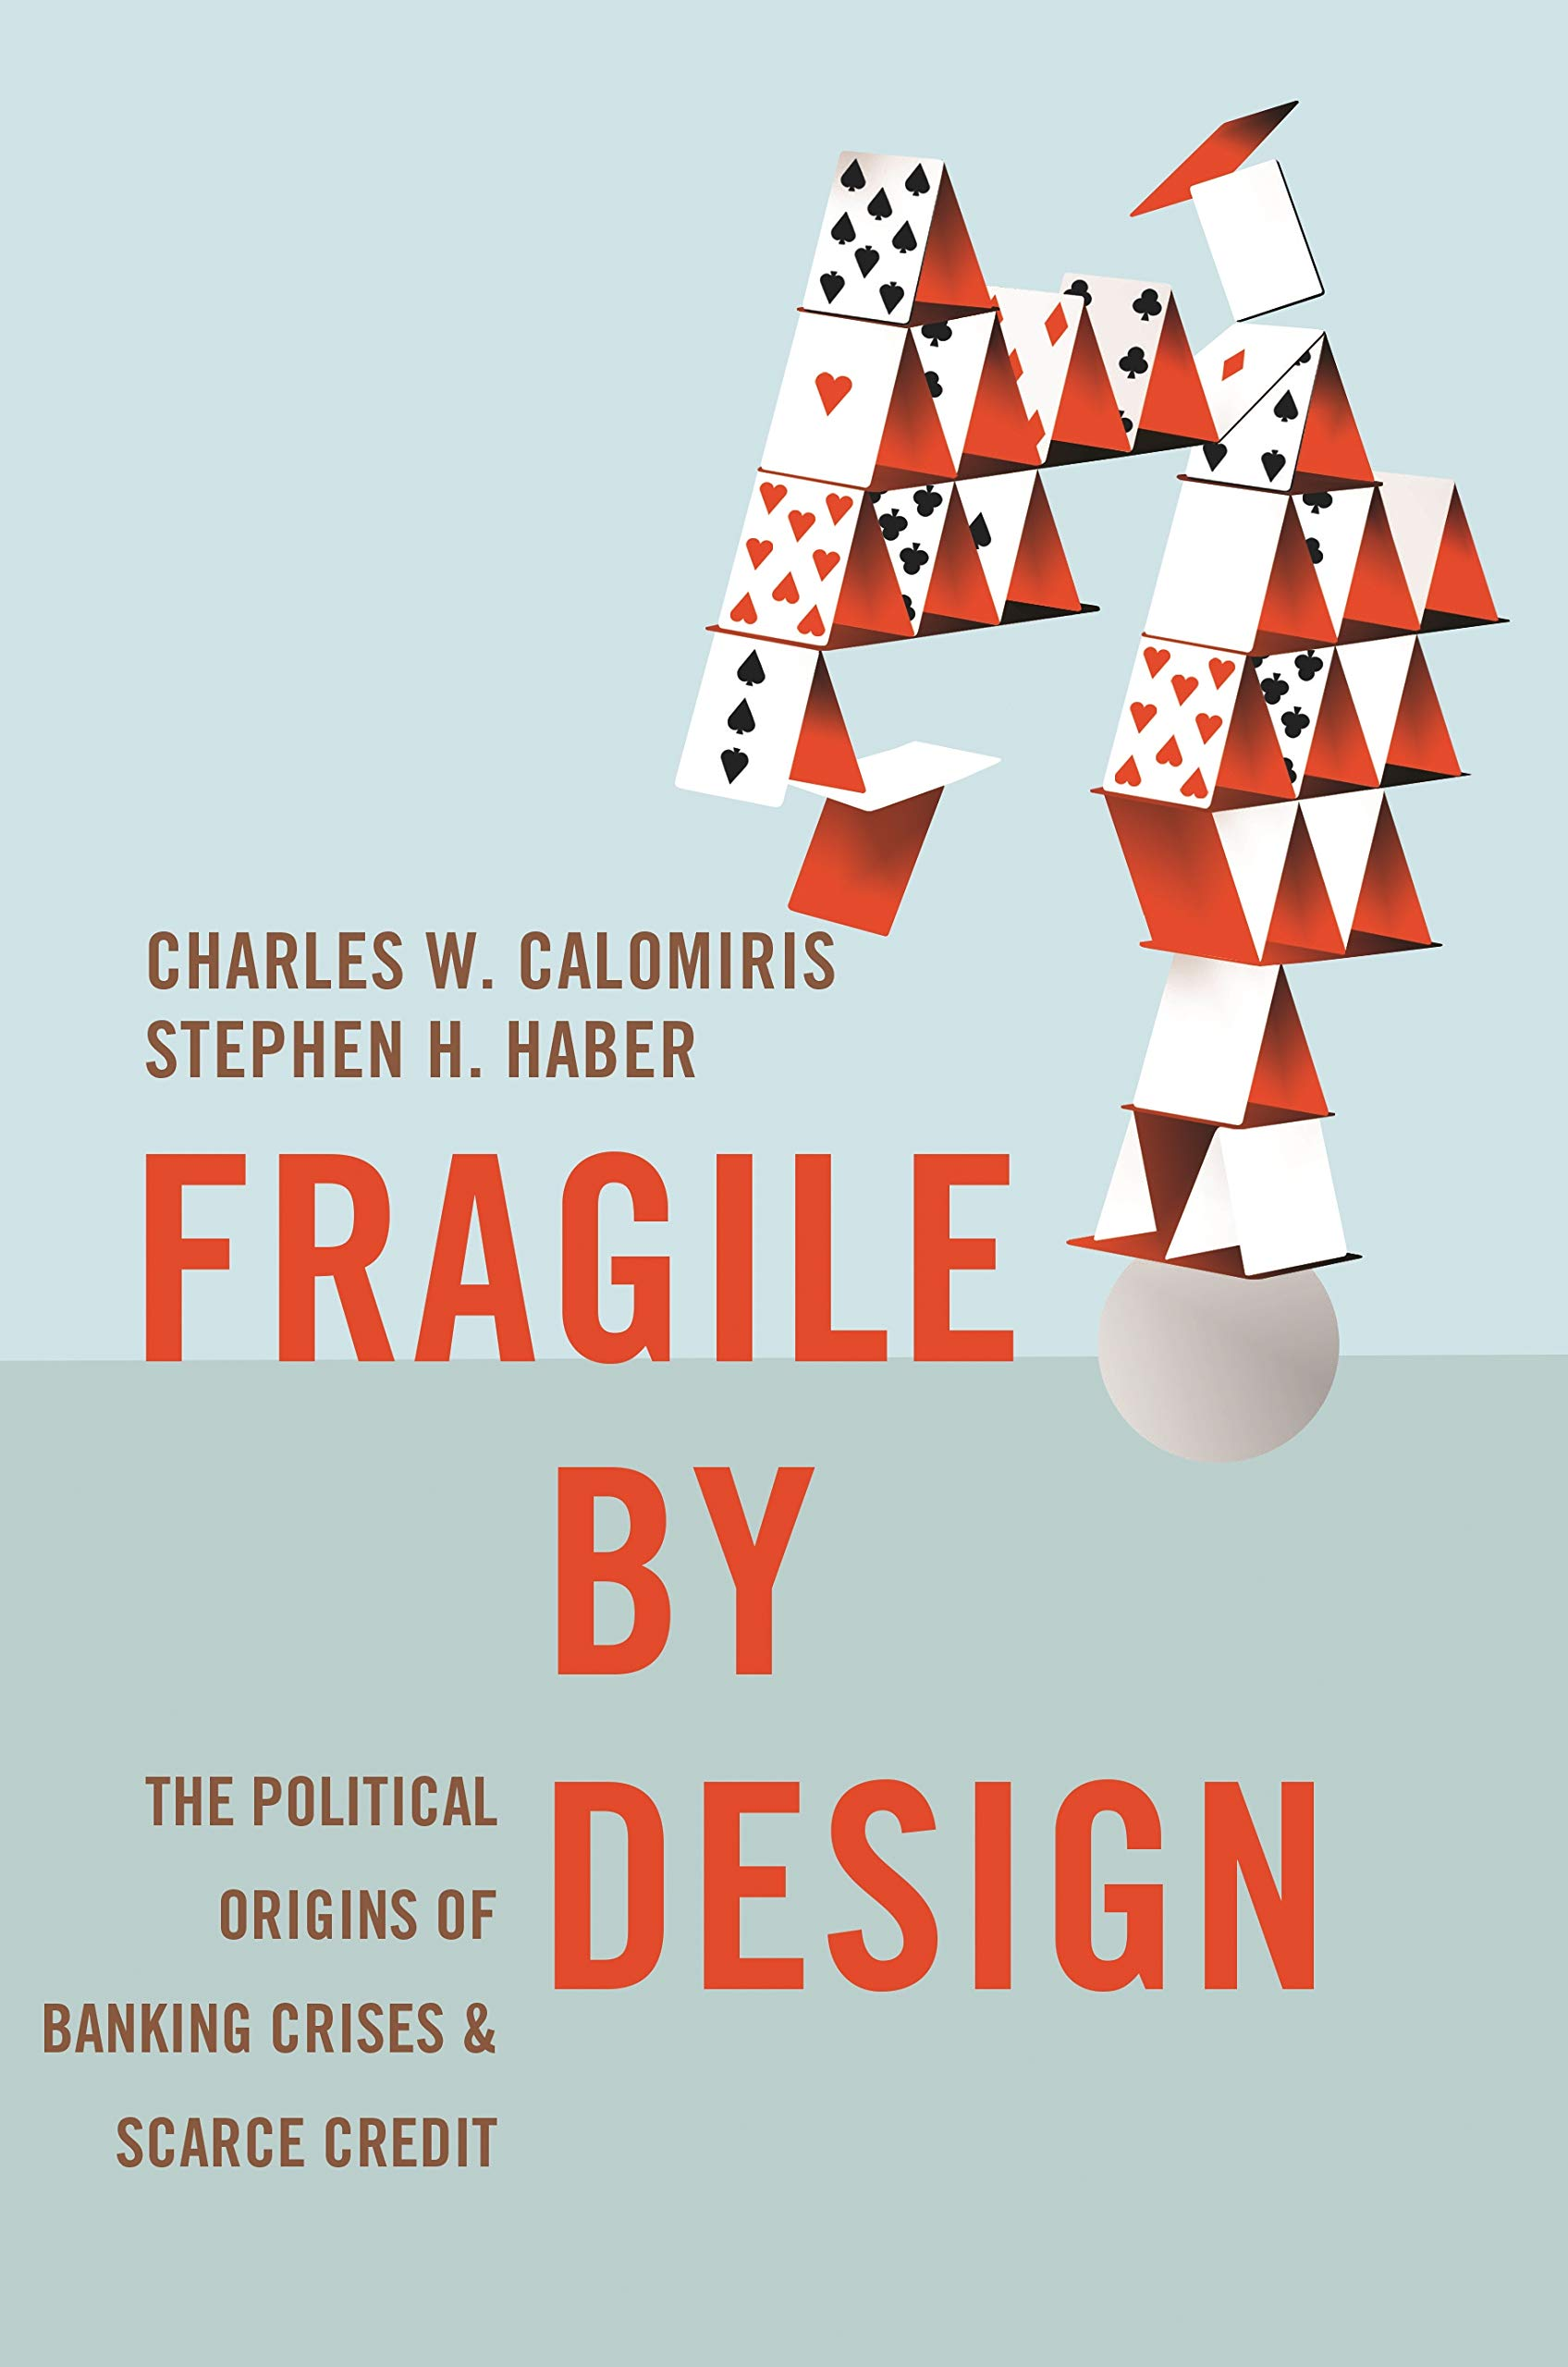 Fragile by Design: The Political Origins of Banking Crises and Scarce Credit (The Princeton Economic History of the Western World Book 50)